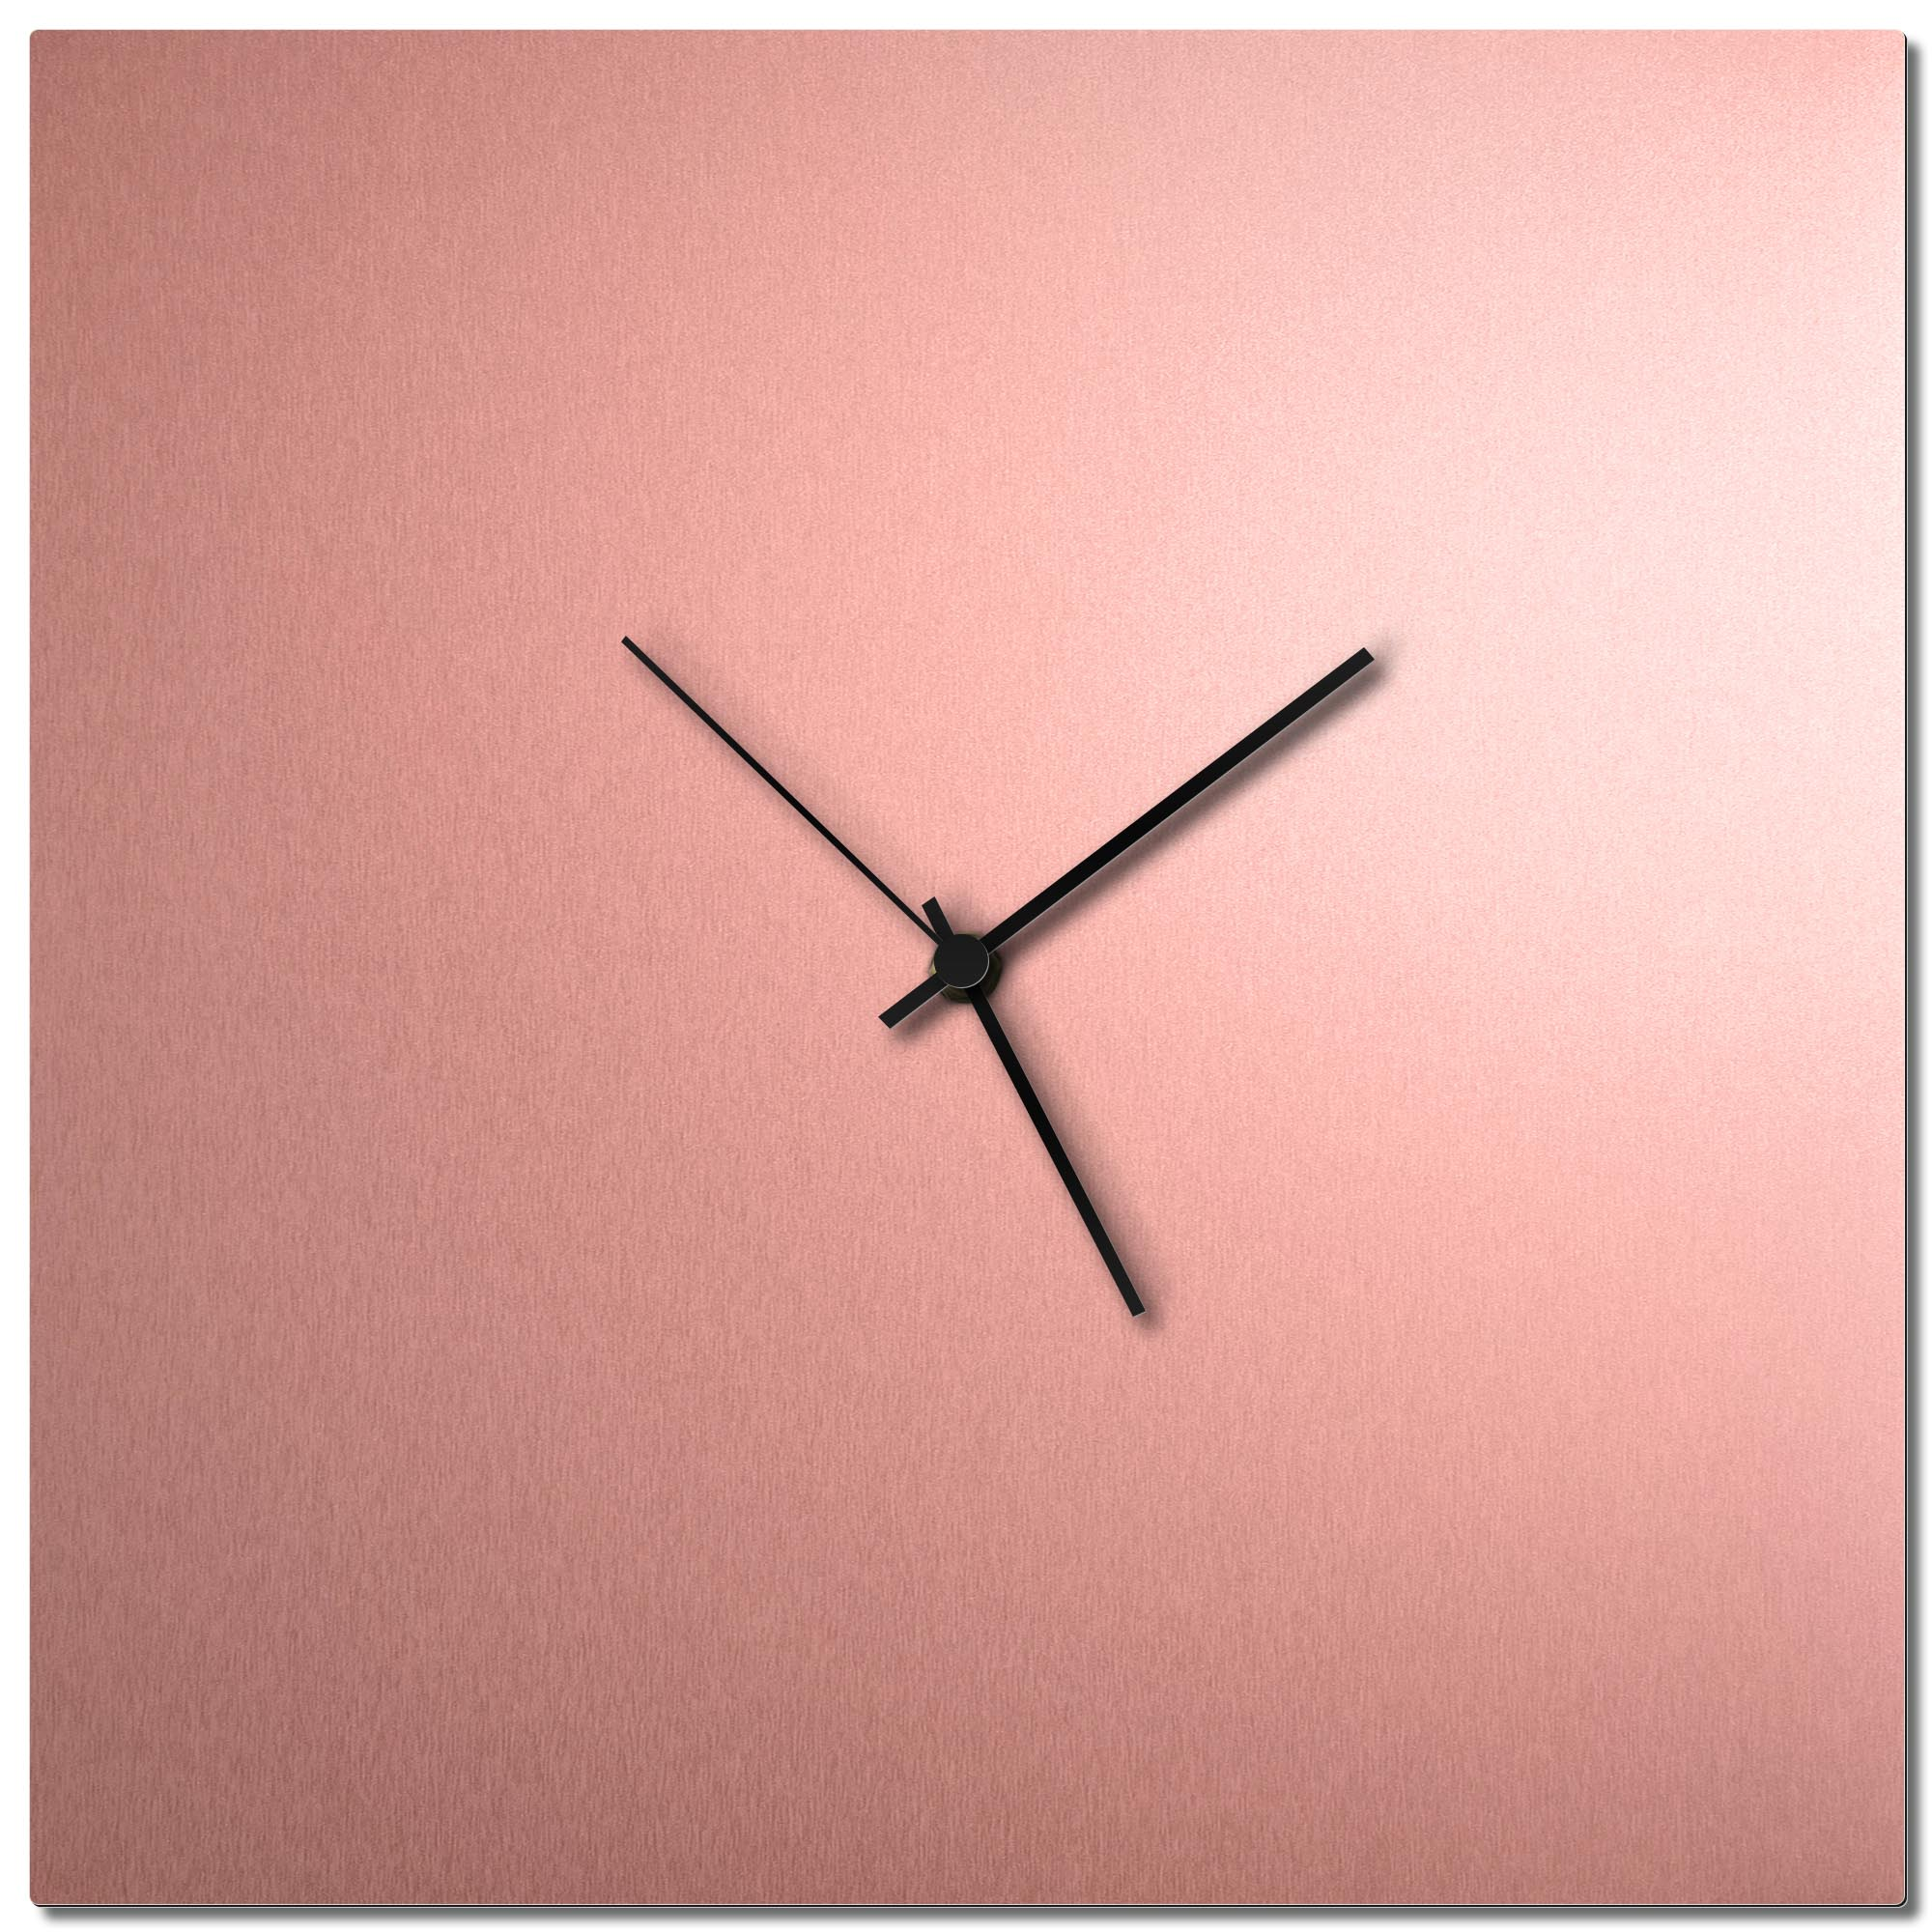 Adam Schwoeppe 'Coppersmith Square Clock Large Black' Midcentury Modern Style Wall Clock